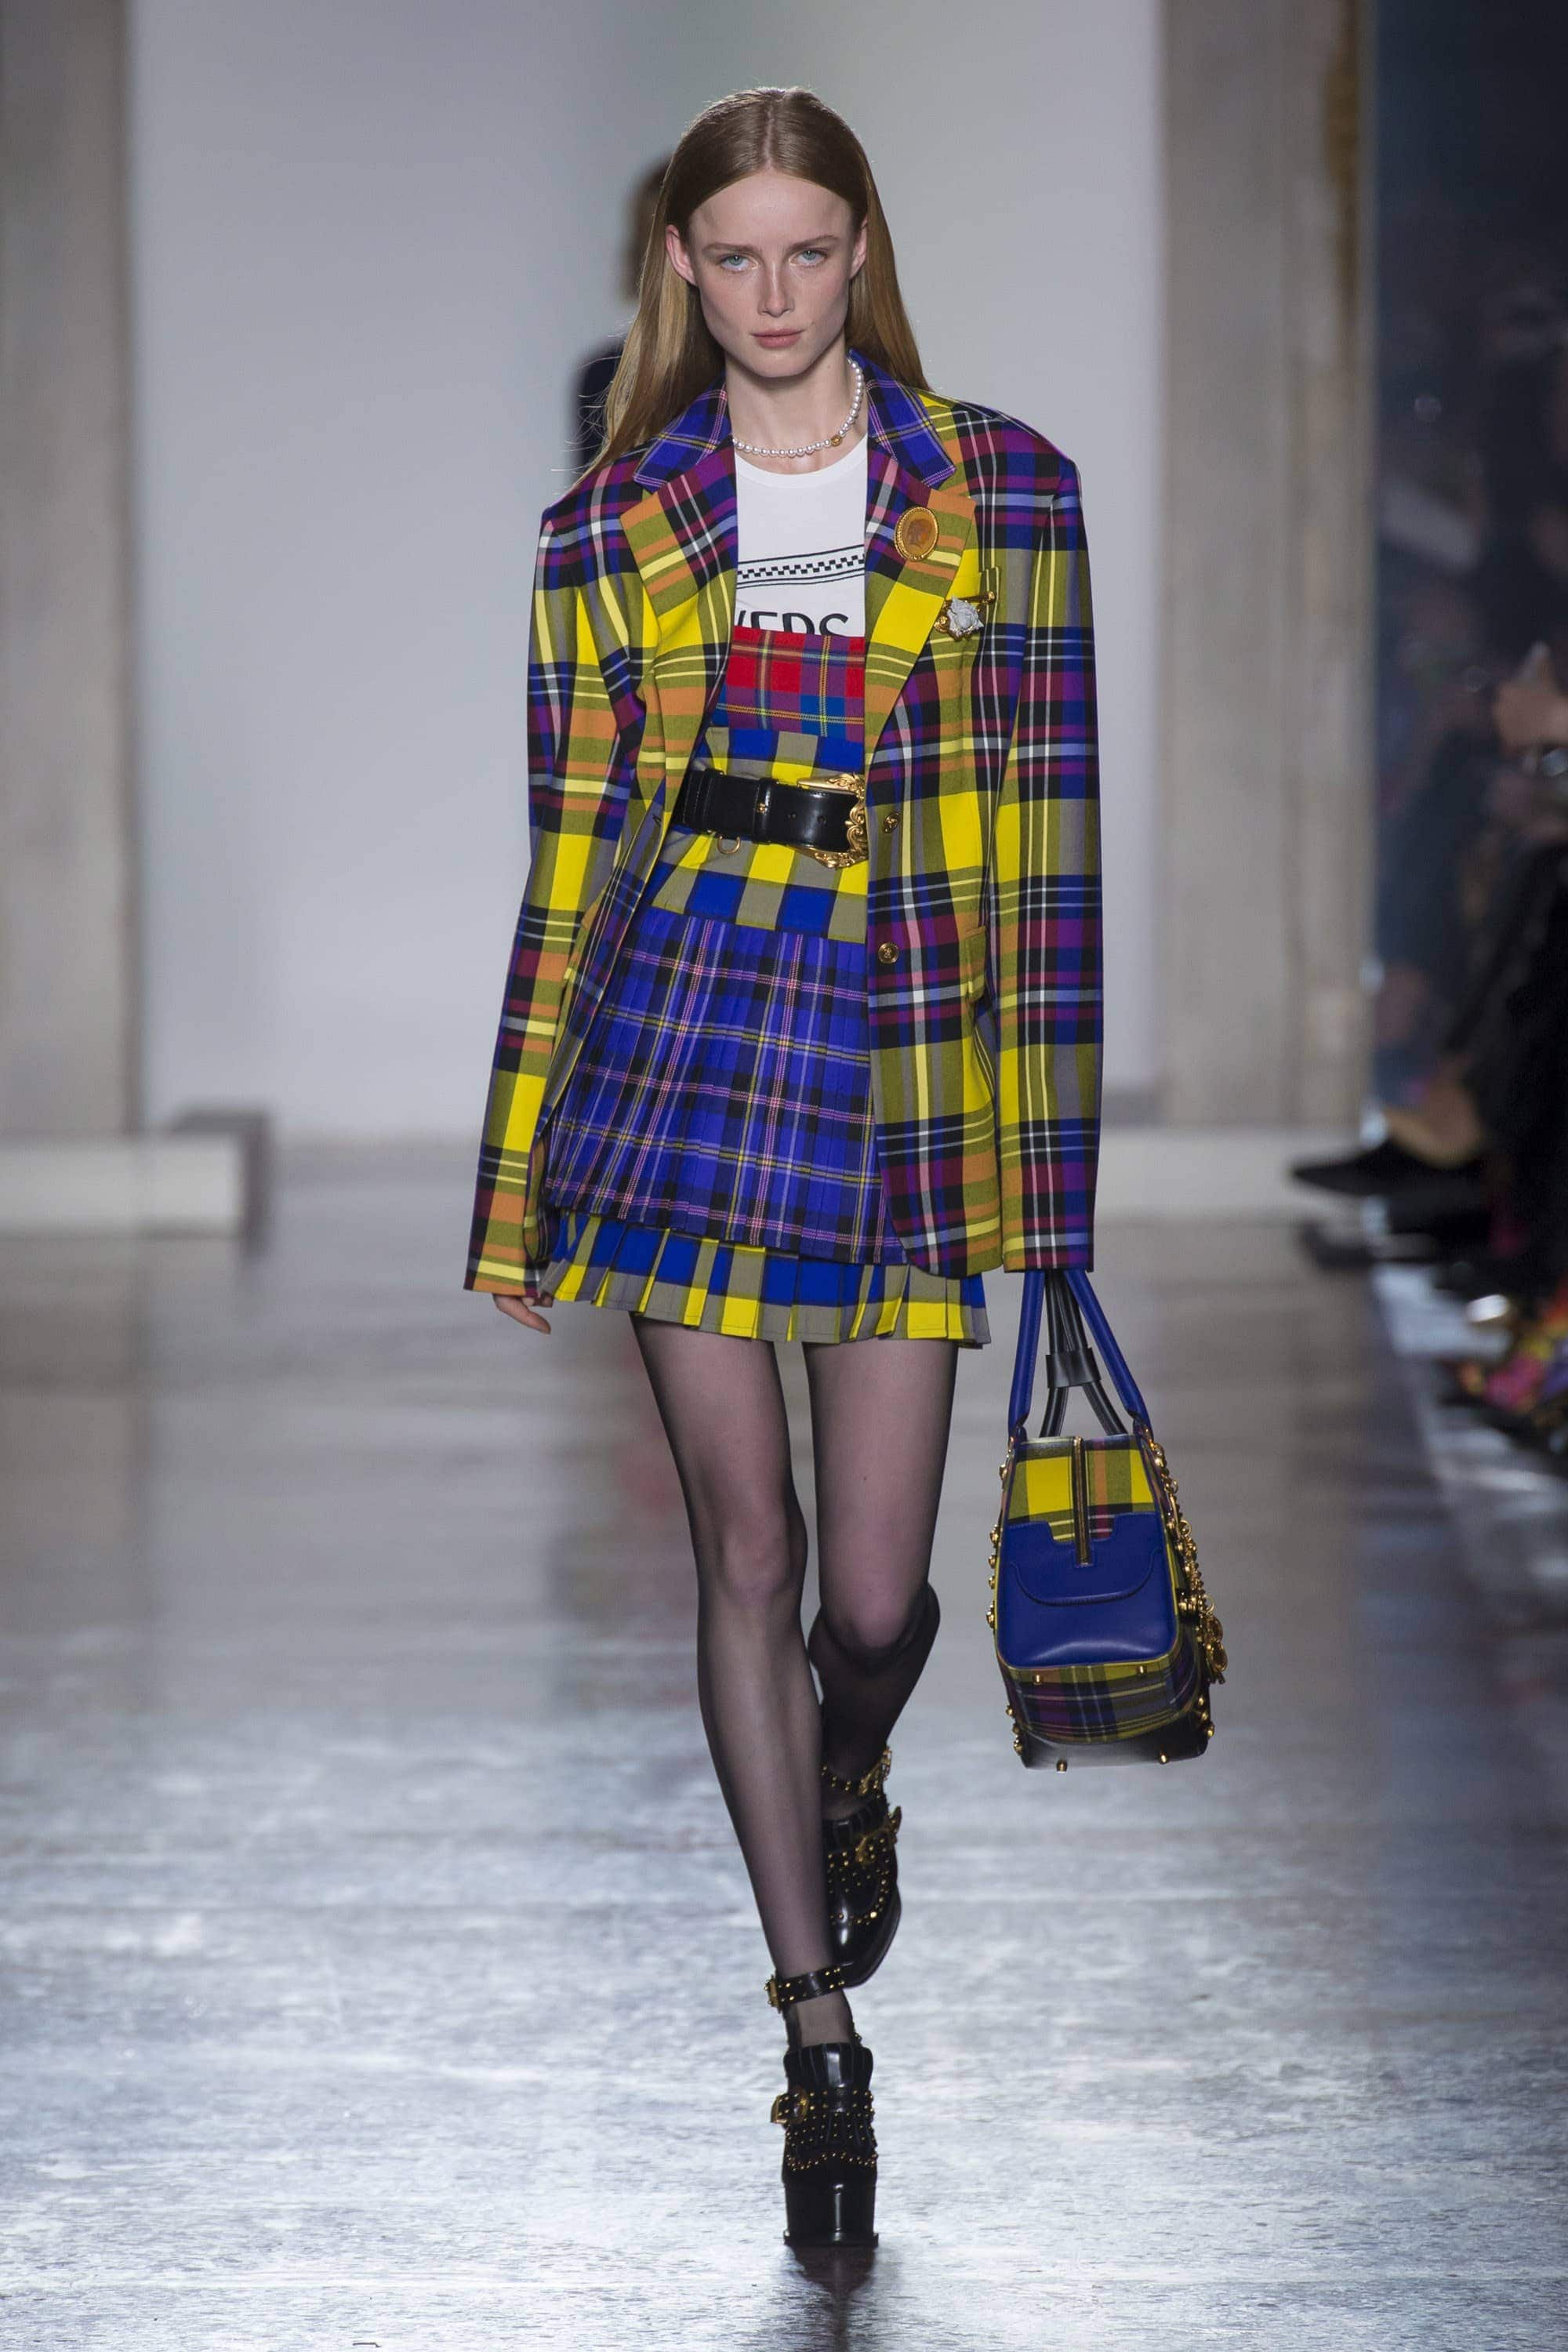 Fashion, Fashionblog, Fashion Magazine, Editorial, Style, Style Guide, Style Inspiration, Outift, OOTD, Outfit Inspiration, Inspo, Edgy, Stylish, Trends, Trend, Trendsetter, Runway, Runway Look, Catwalk, Fashion Week, Fashion Update, News, Moodboard, Trendy Tuesday, Versace